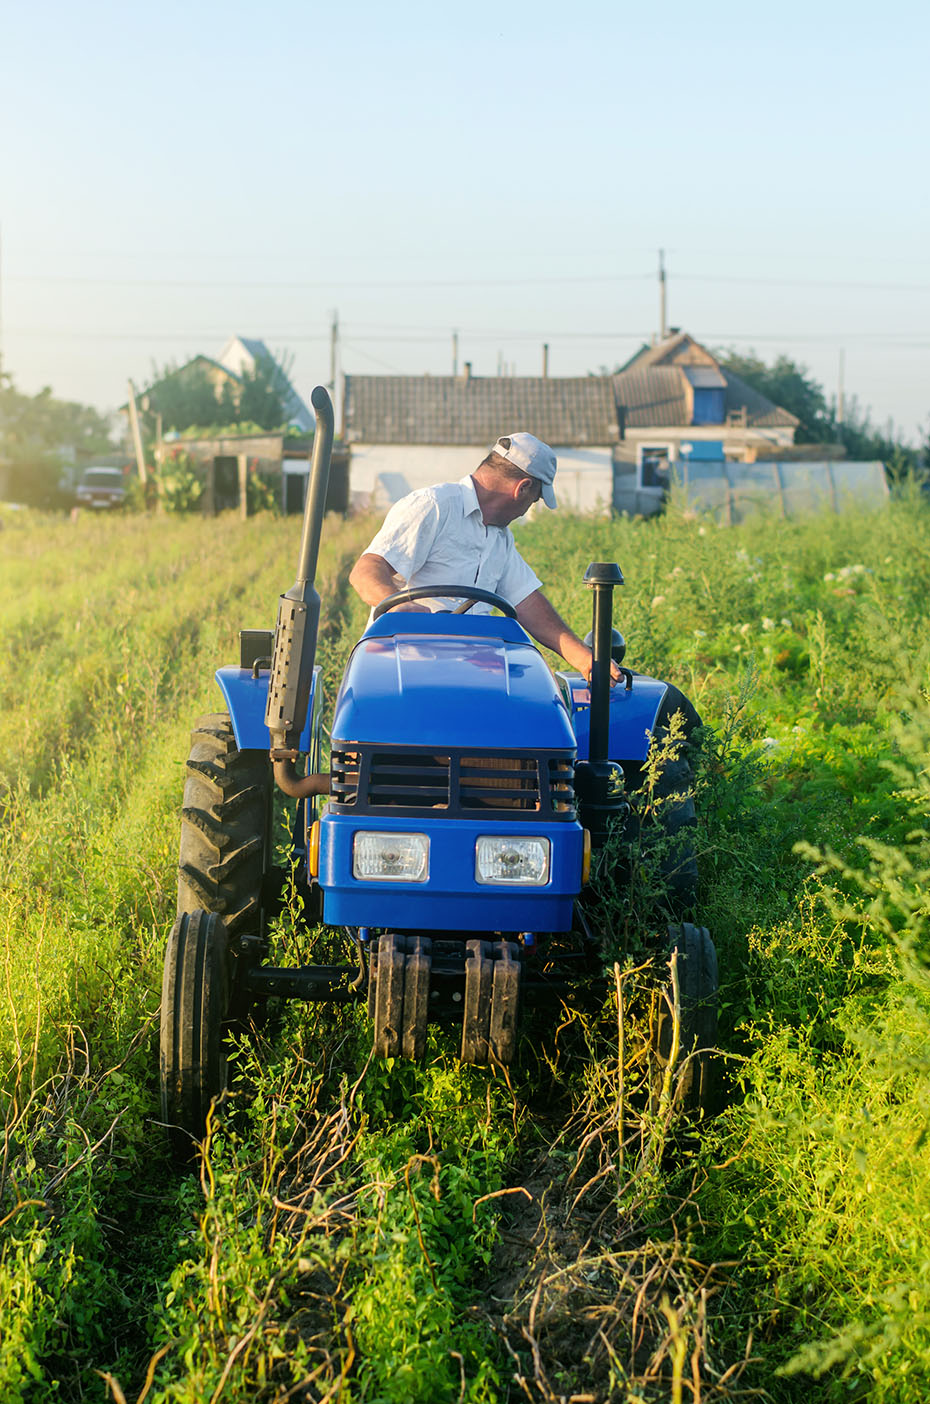 Farmer on a tractor works in farm field. Farming, agriculture. Simplify and speed up work with technology and machines. Farming and farmland. Harvesting potatoes. Harvesting potatoes in autumn.